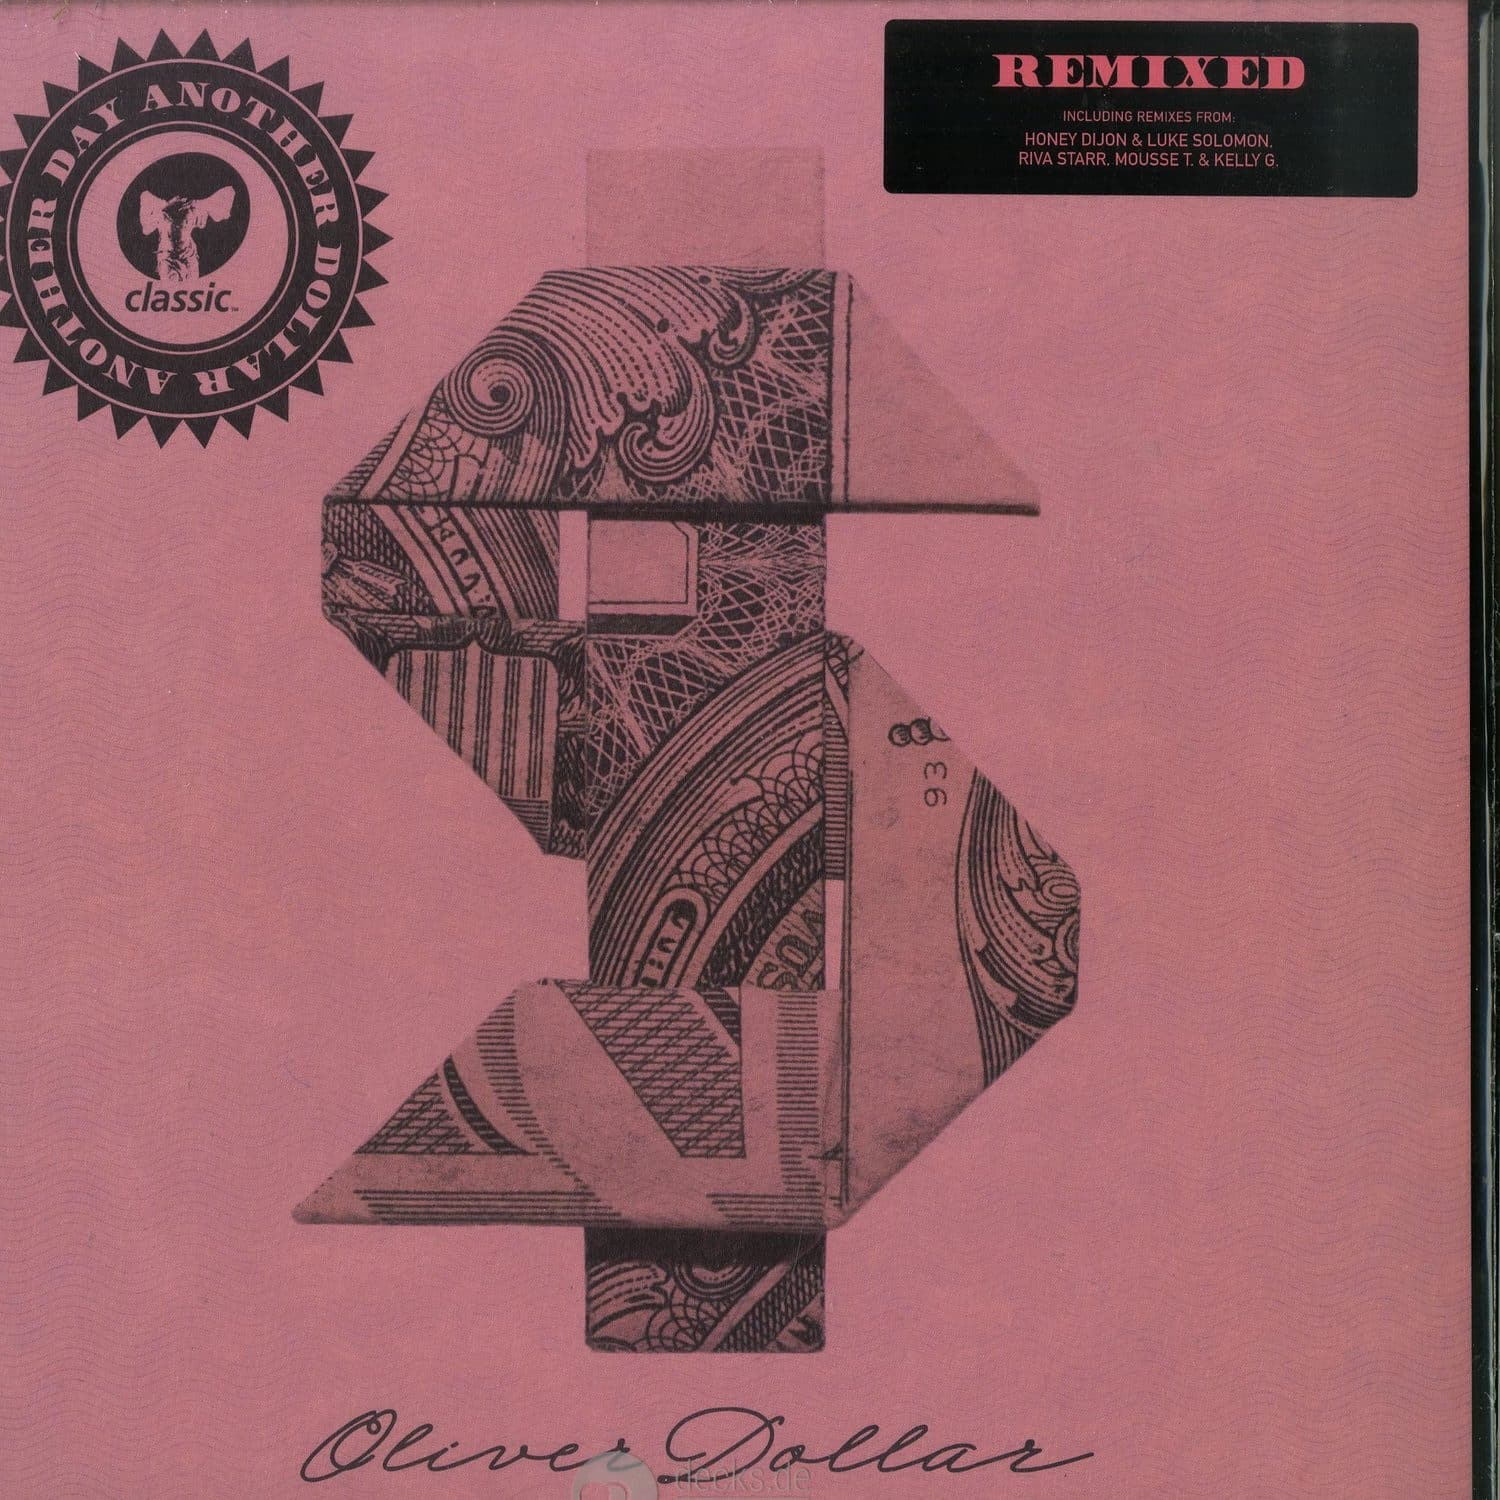 Oliver Dollar - ANOTHER DAY ANOTHER DOLLAR REMIXED